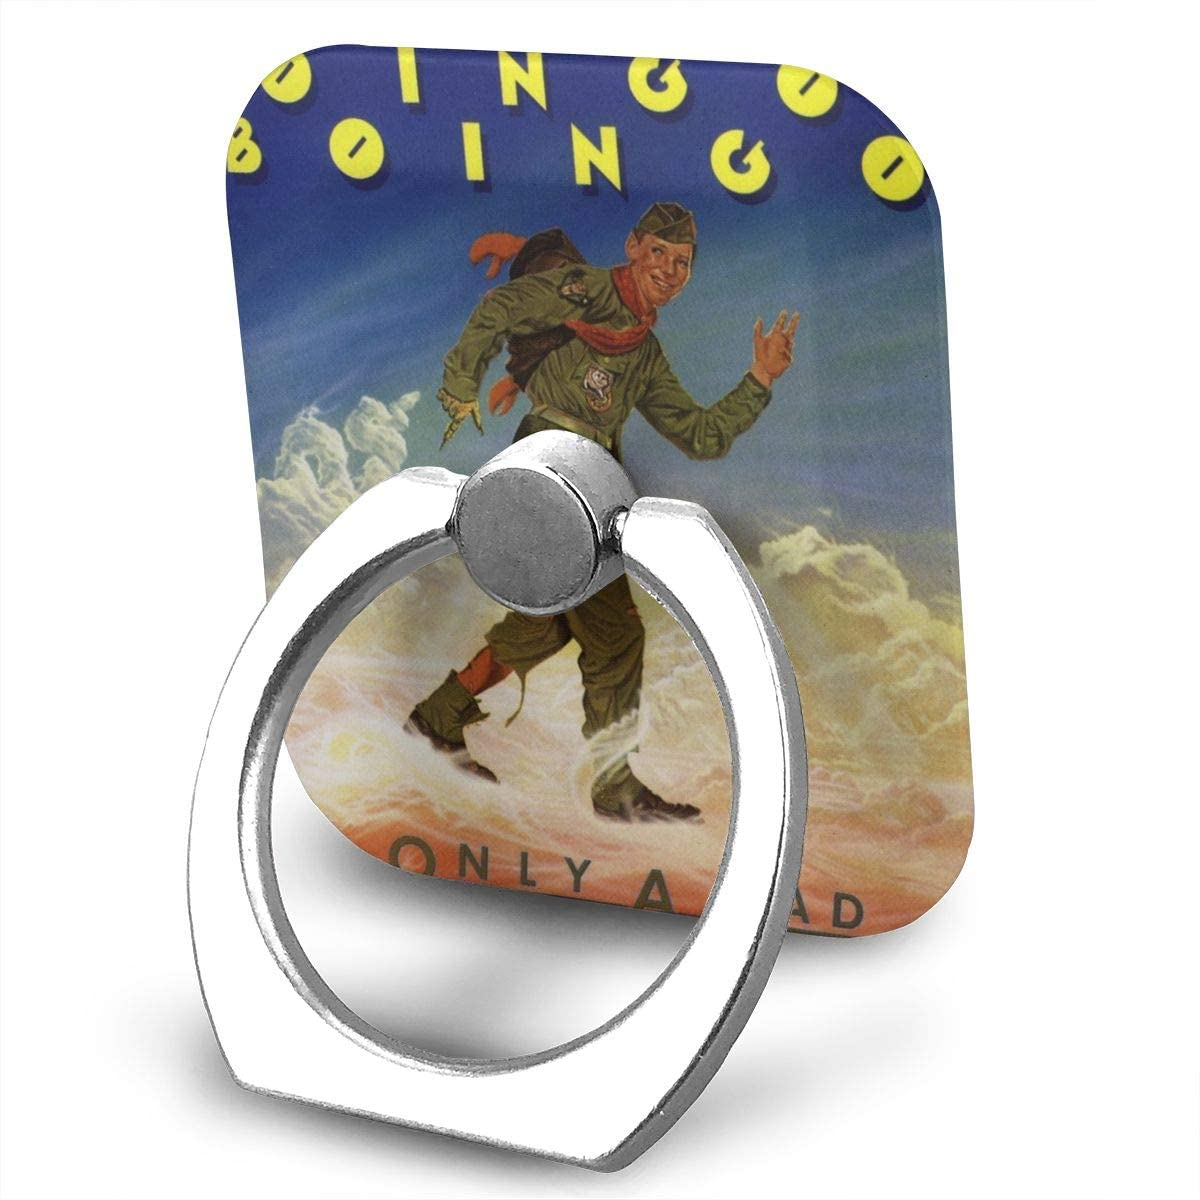 Oingo Boingo Phone Finger Ring Stand Bracket Holder Smartphone Grip Stand Holder 360 Degree Rotating Sticky Cute